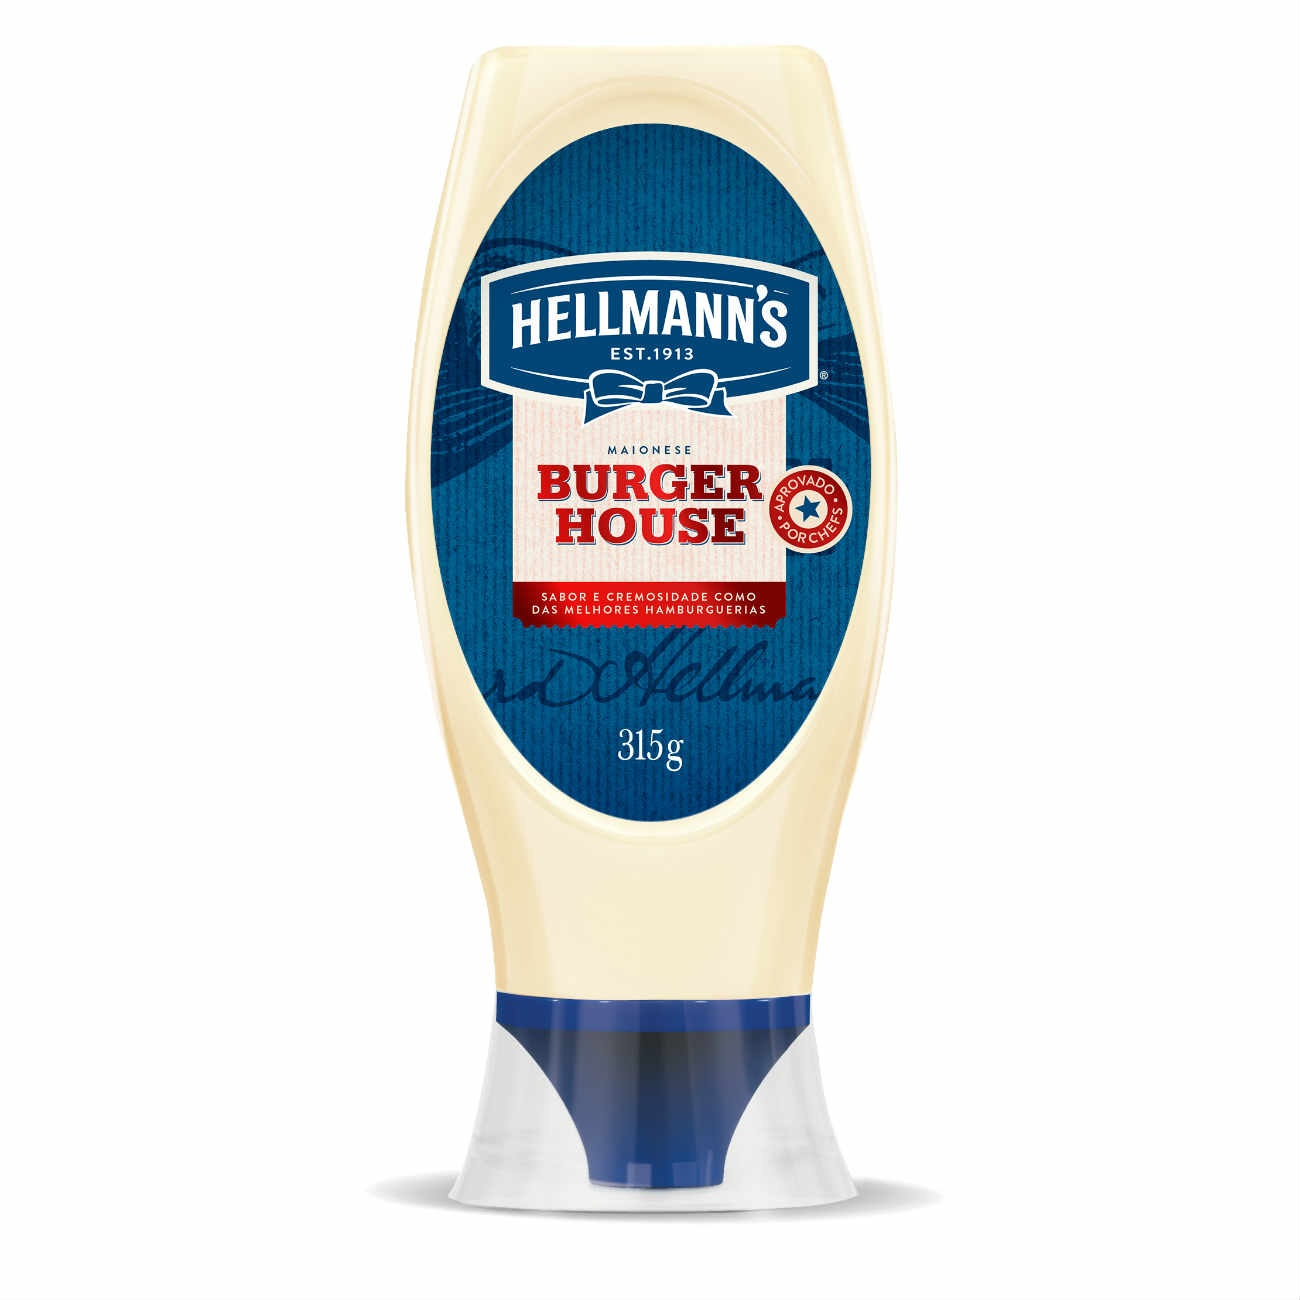 Maionese Squeeze Hellmann's Burger House 315g